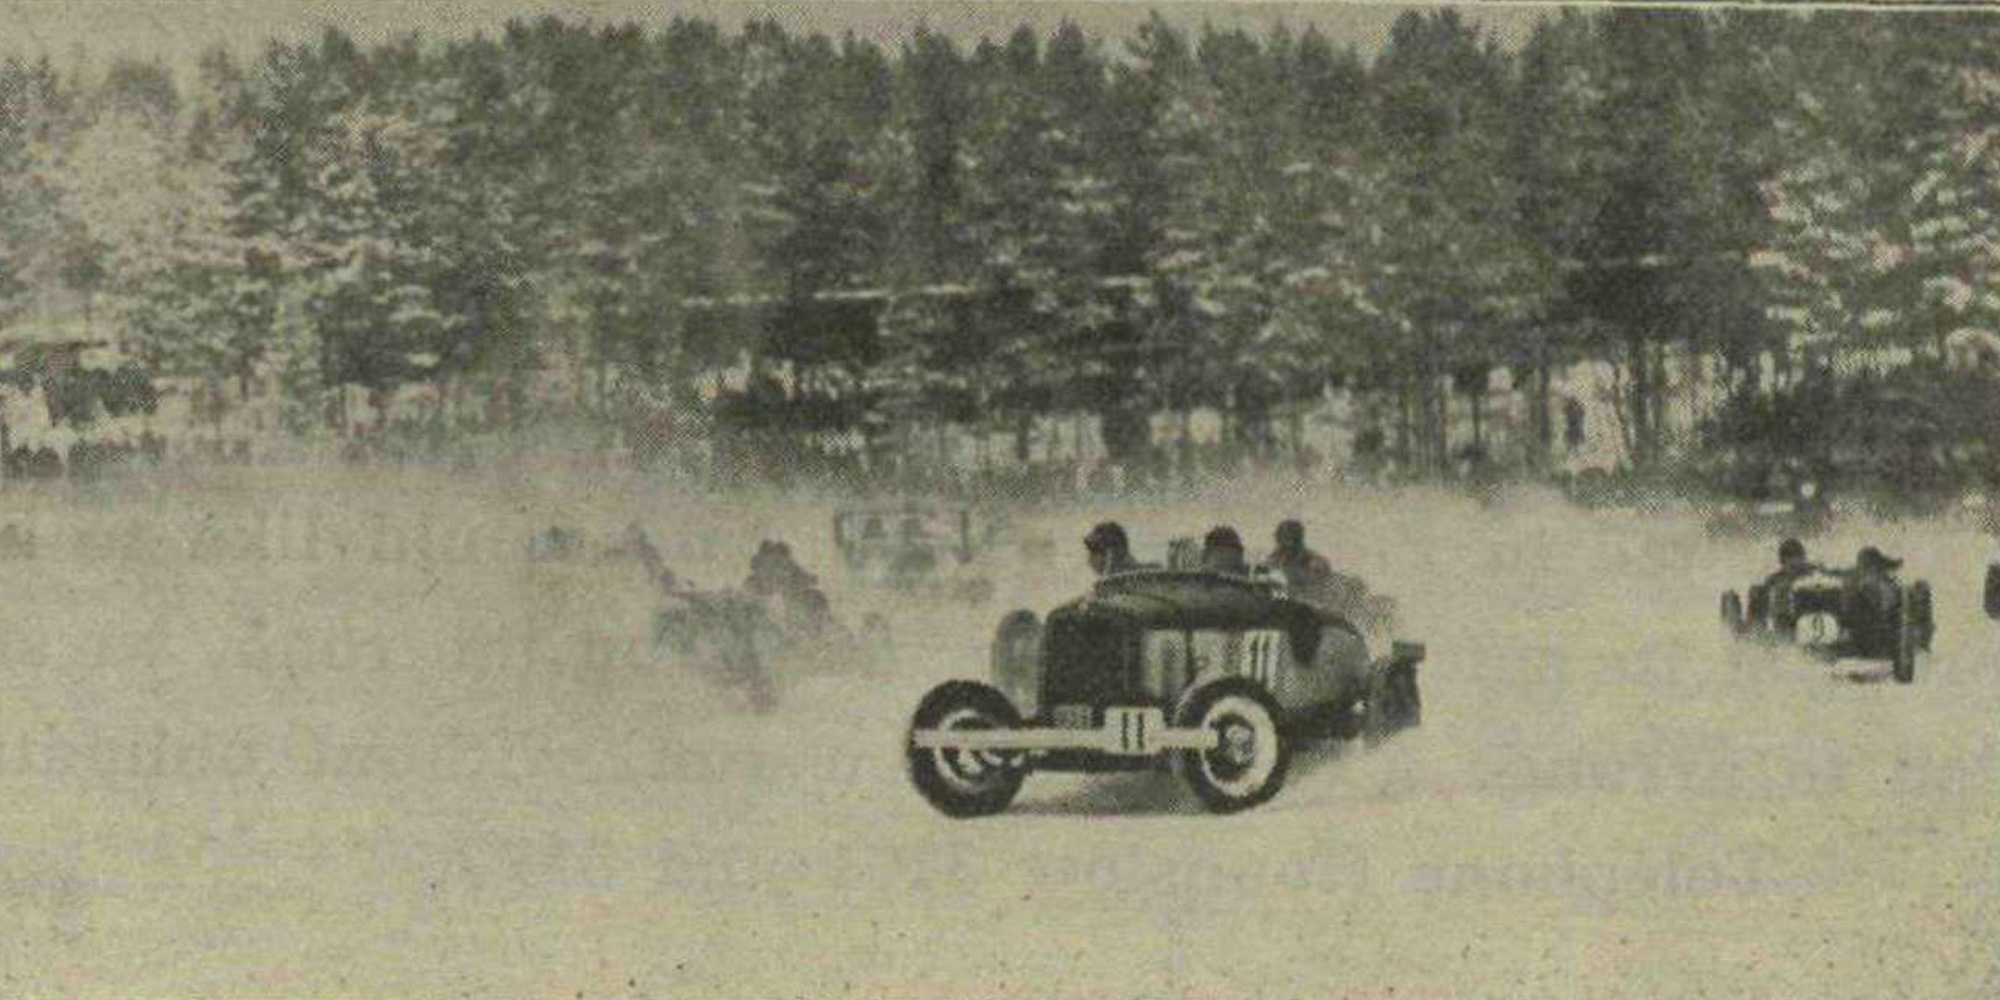 Ice-racing-Sweden-1933-from-Motor-Sport-Magazine